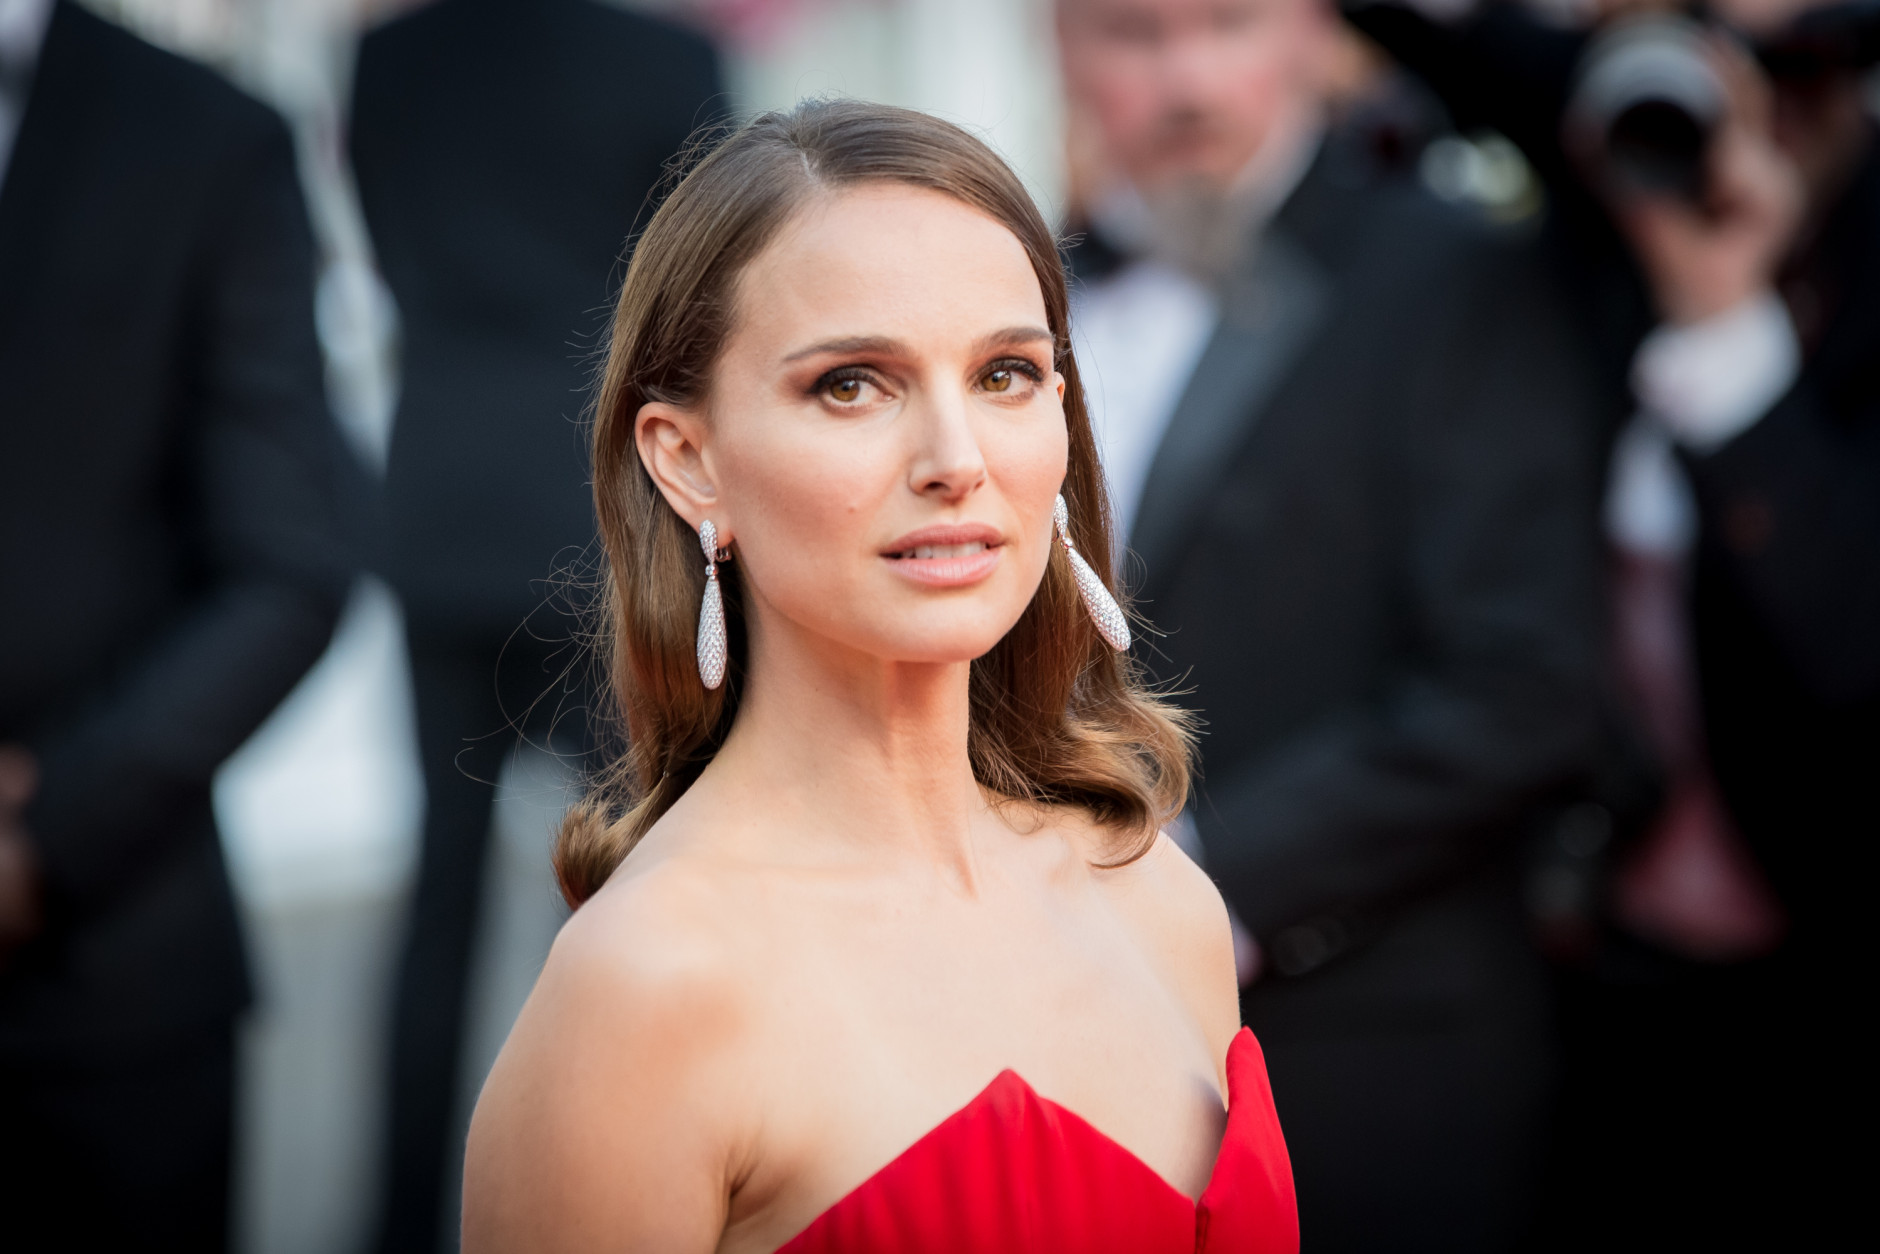 Natalie Portman arrives for the opening ceremony and for the screening of the film La Tete Haute (Standing Tall) at the 68th international film festival, Cannes, southern France, Wednesday, May 13, 2015. (Photo by Vianney Le Caer/Invision/AP)